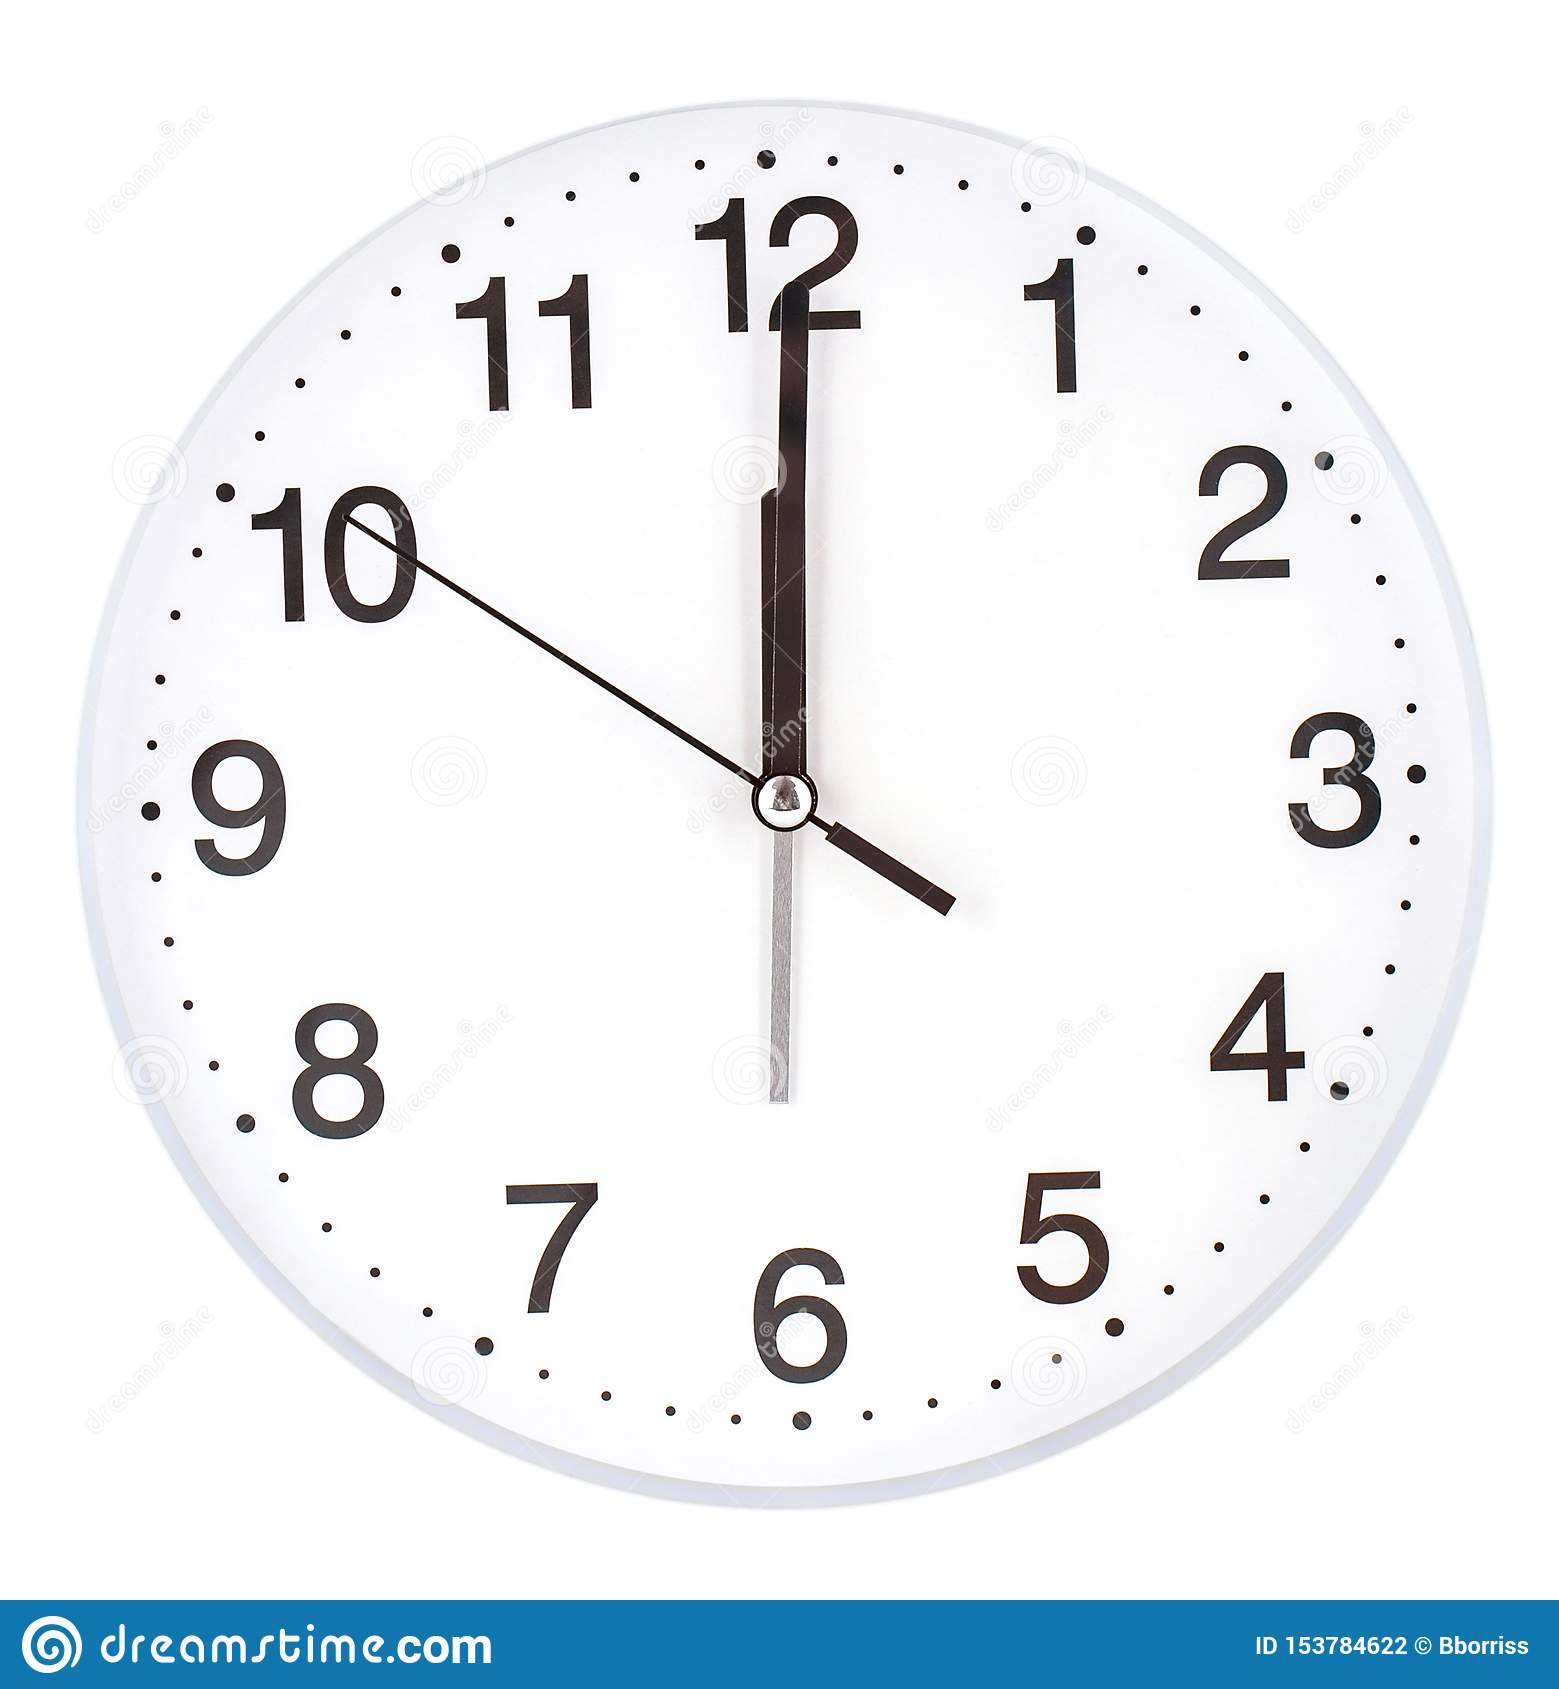 The Blank Clock Face With Hour Minute And Second Hands